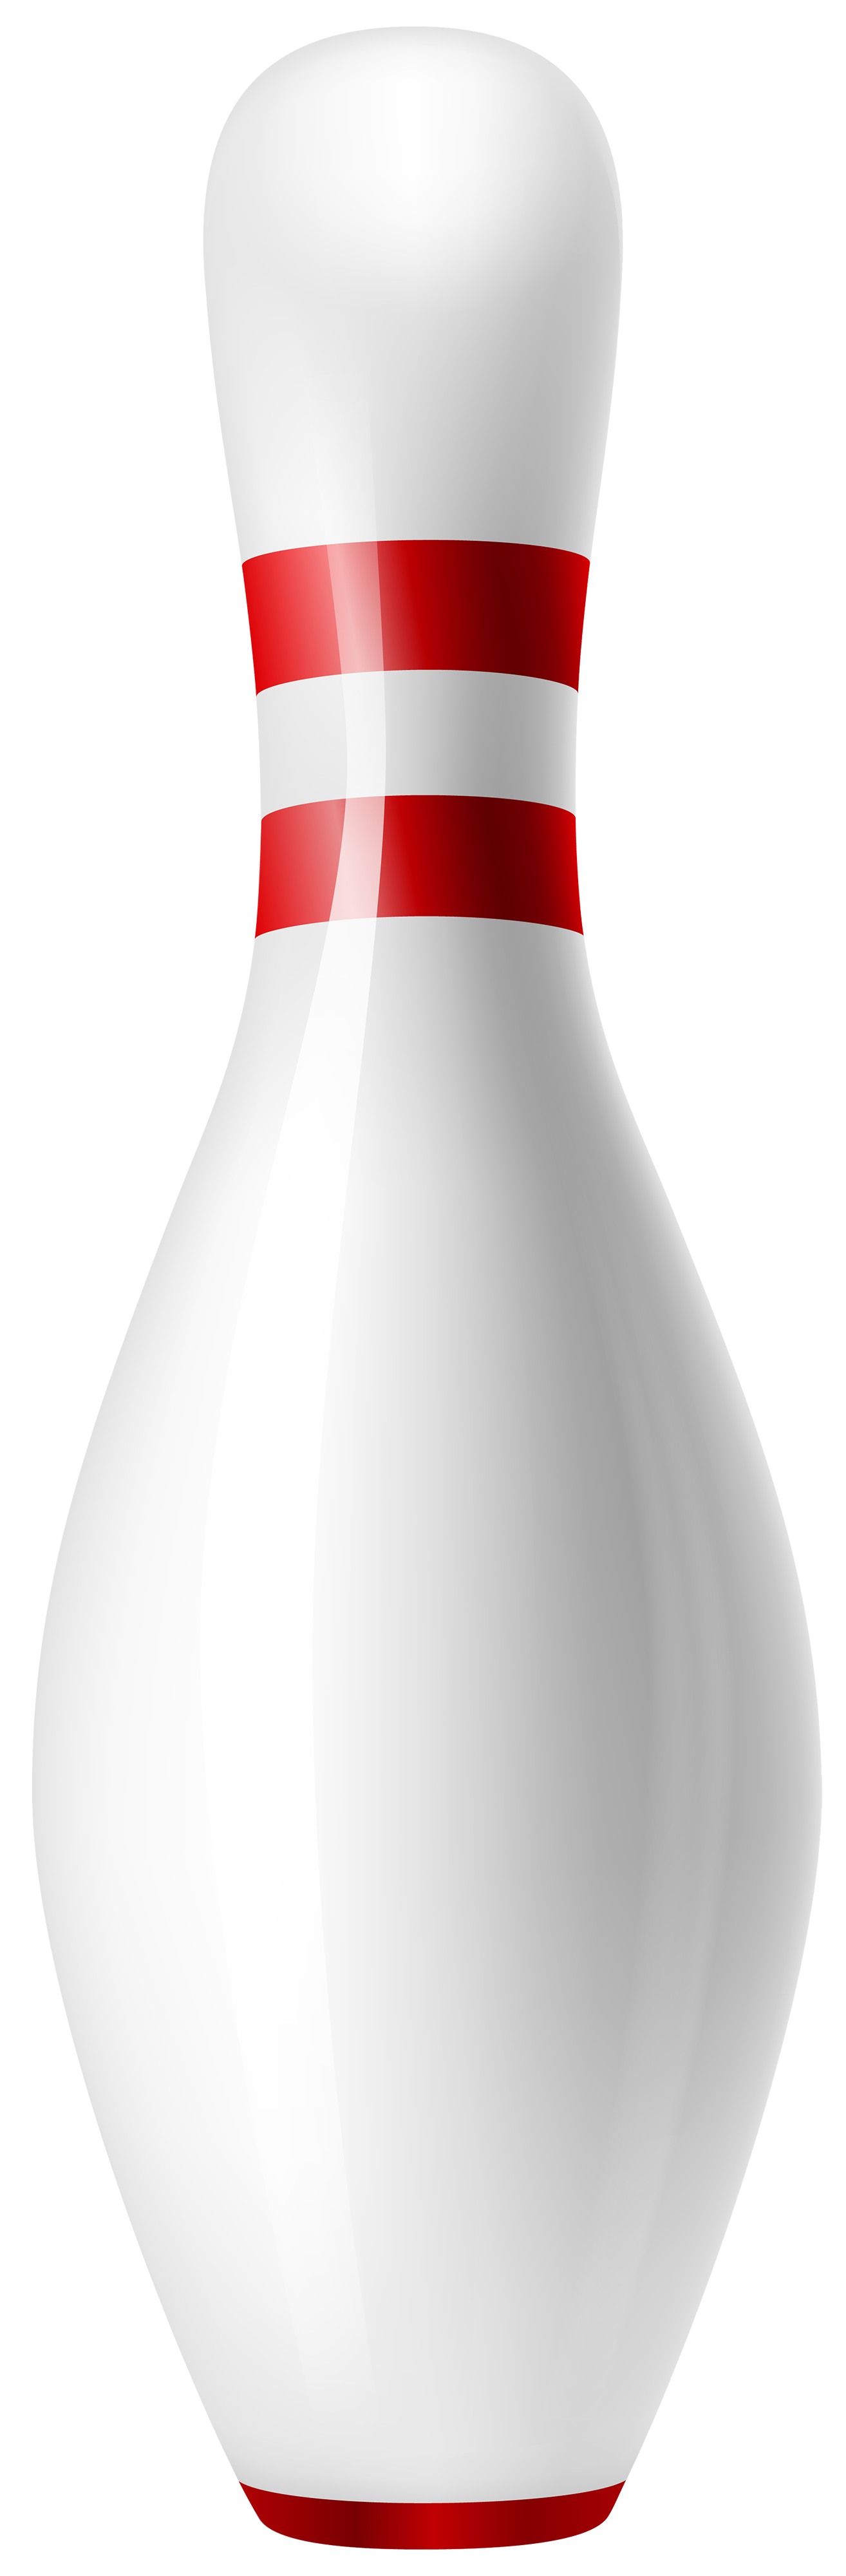 Bowling pin png. Images free download